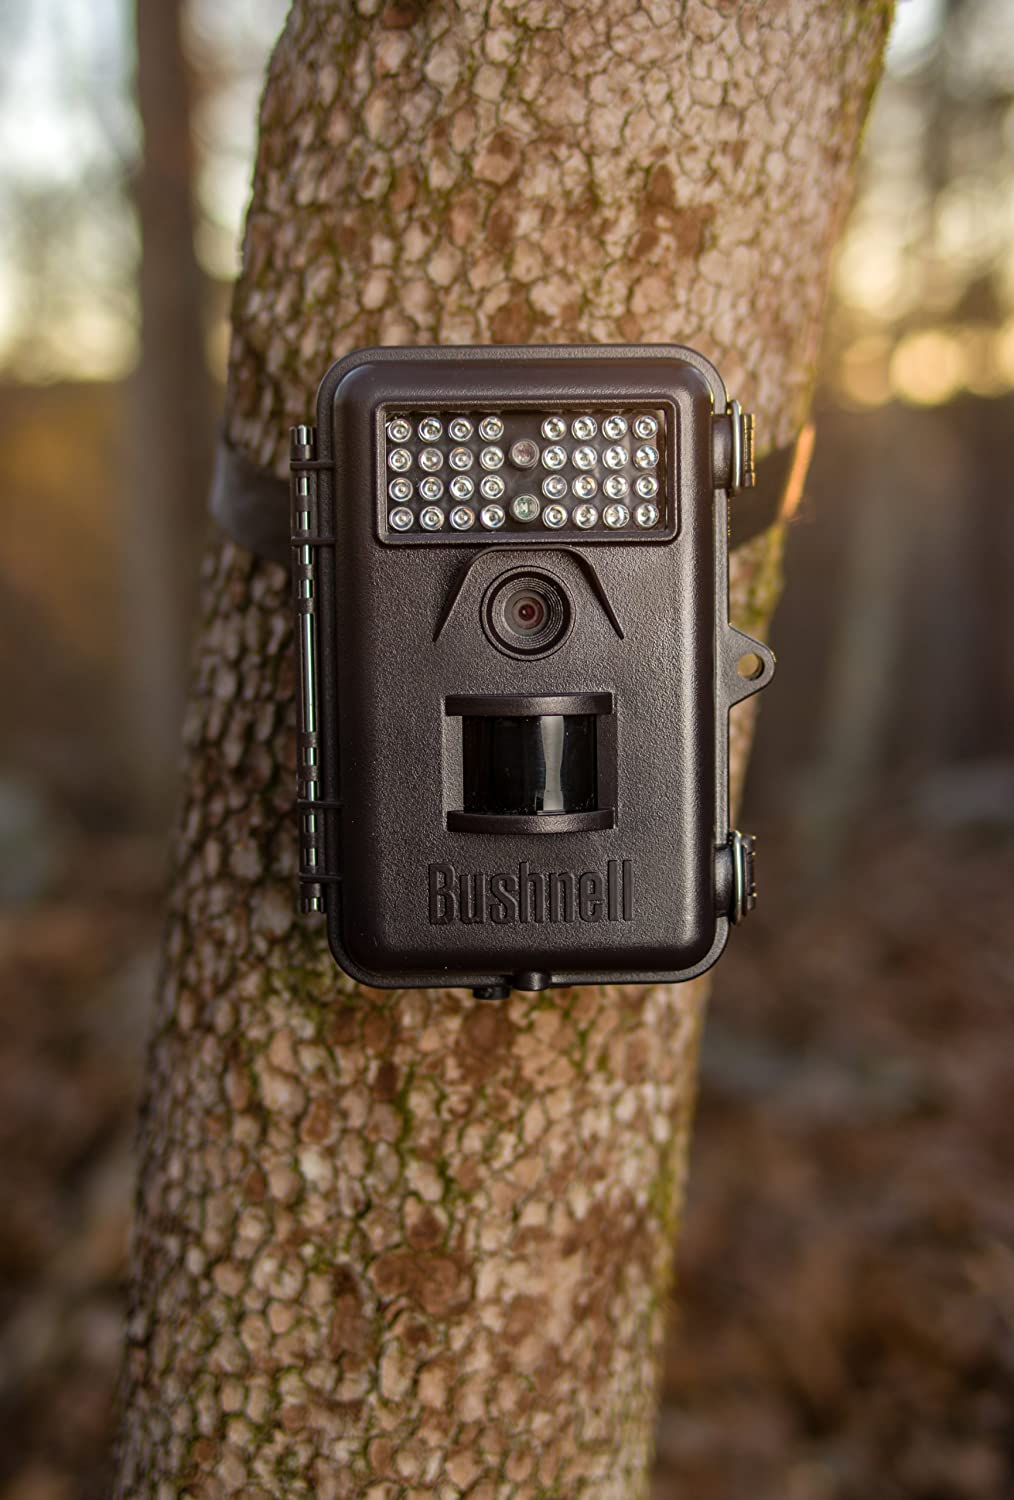 Amazon.com : Bushnell 6MP Trophy Cam Essential Trail Camera with ...